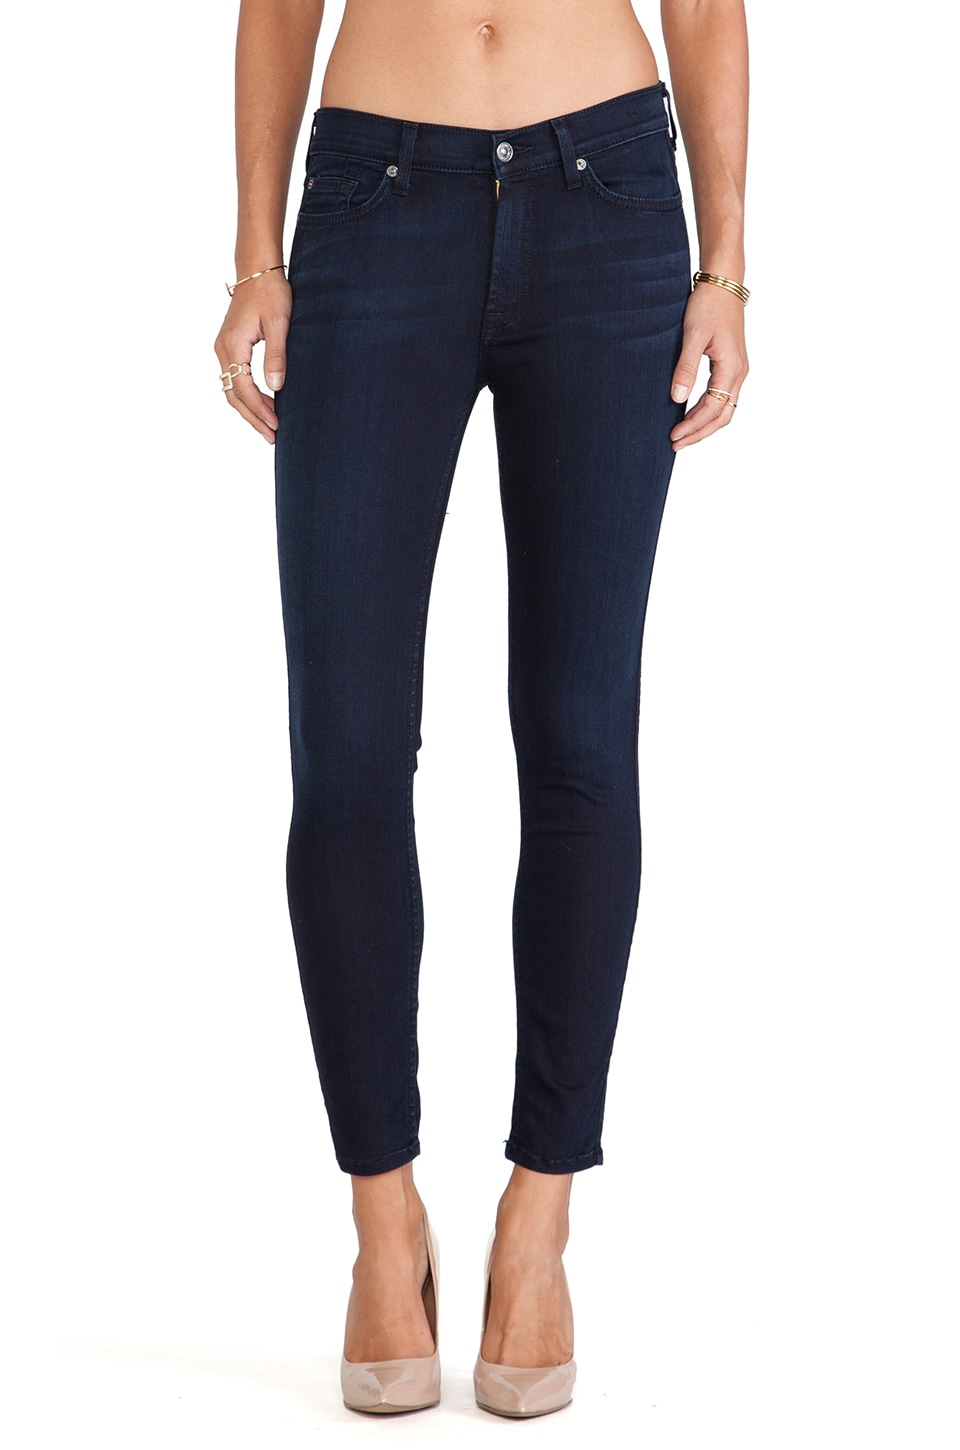 7 For All Mankind The Ankle Skinny in Lilah Blue Black